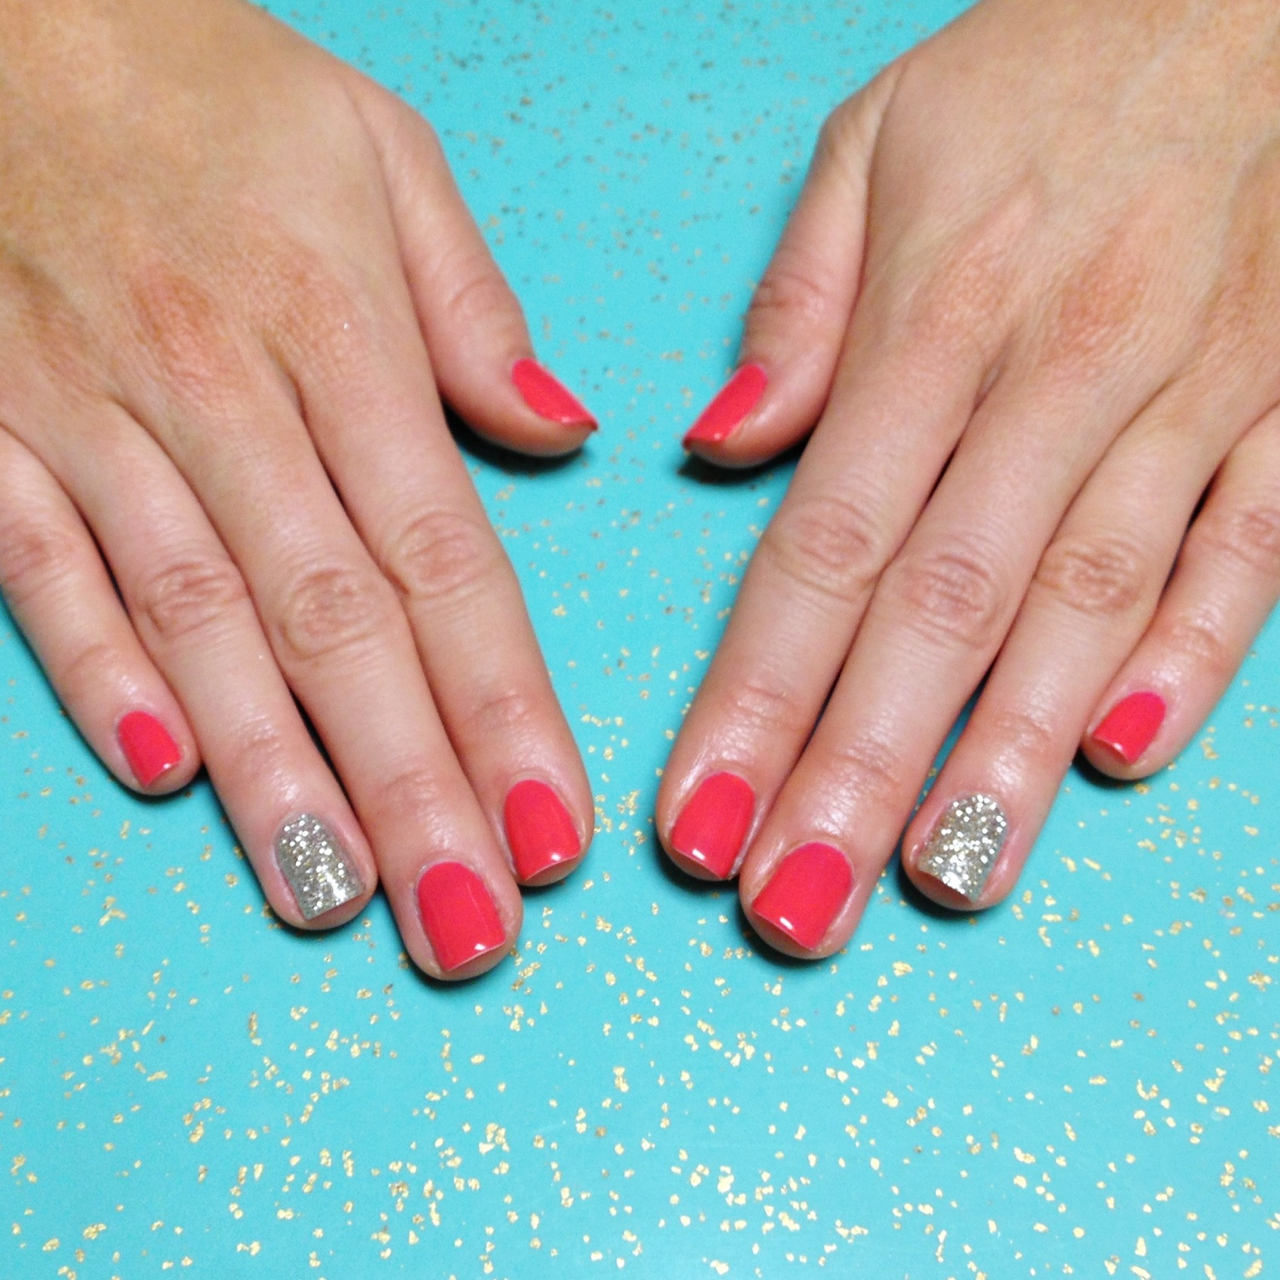 City nails hours nail ftempo for Nail salon hours